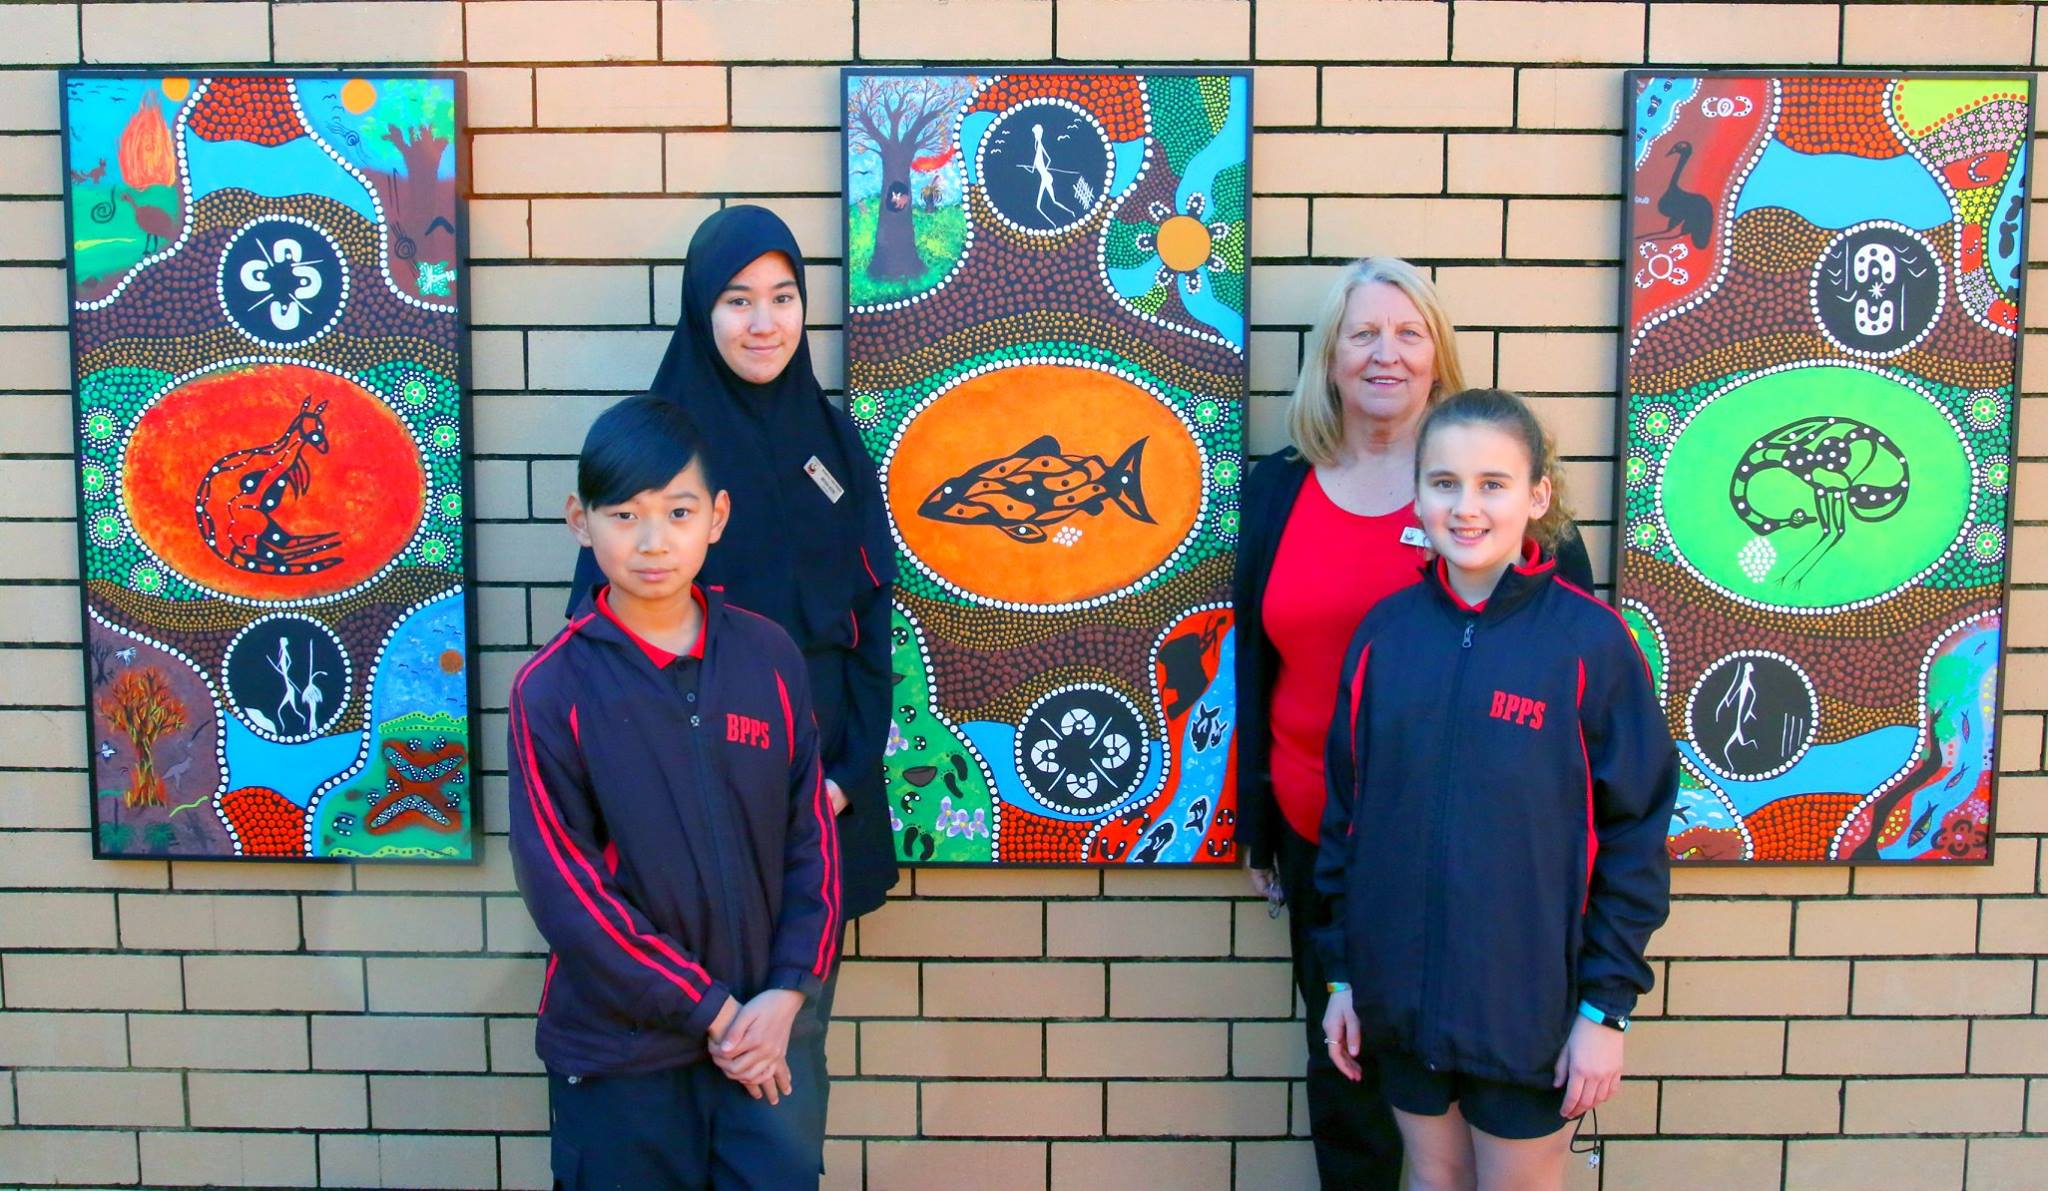 Six Seasons Mural- Bramfield Park P.S. - Bramfield Park Primary School commissioned a mural featuring the Noongar Six Seasons. This was a collaboration between the artists and school students.